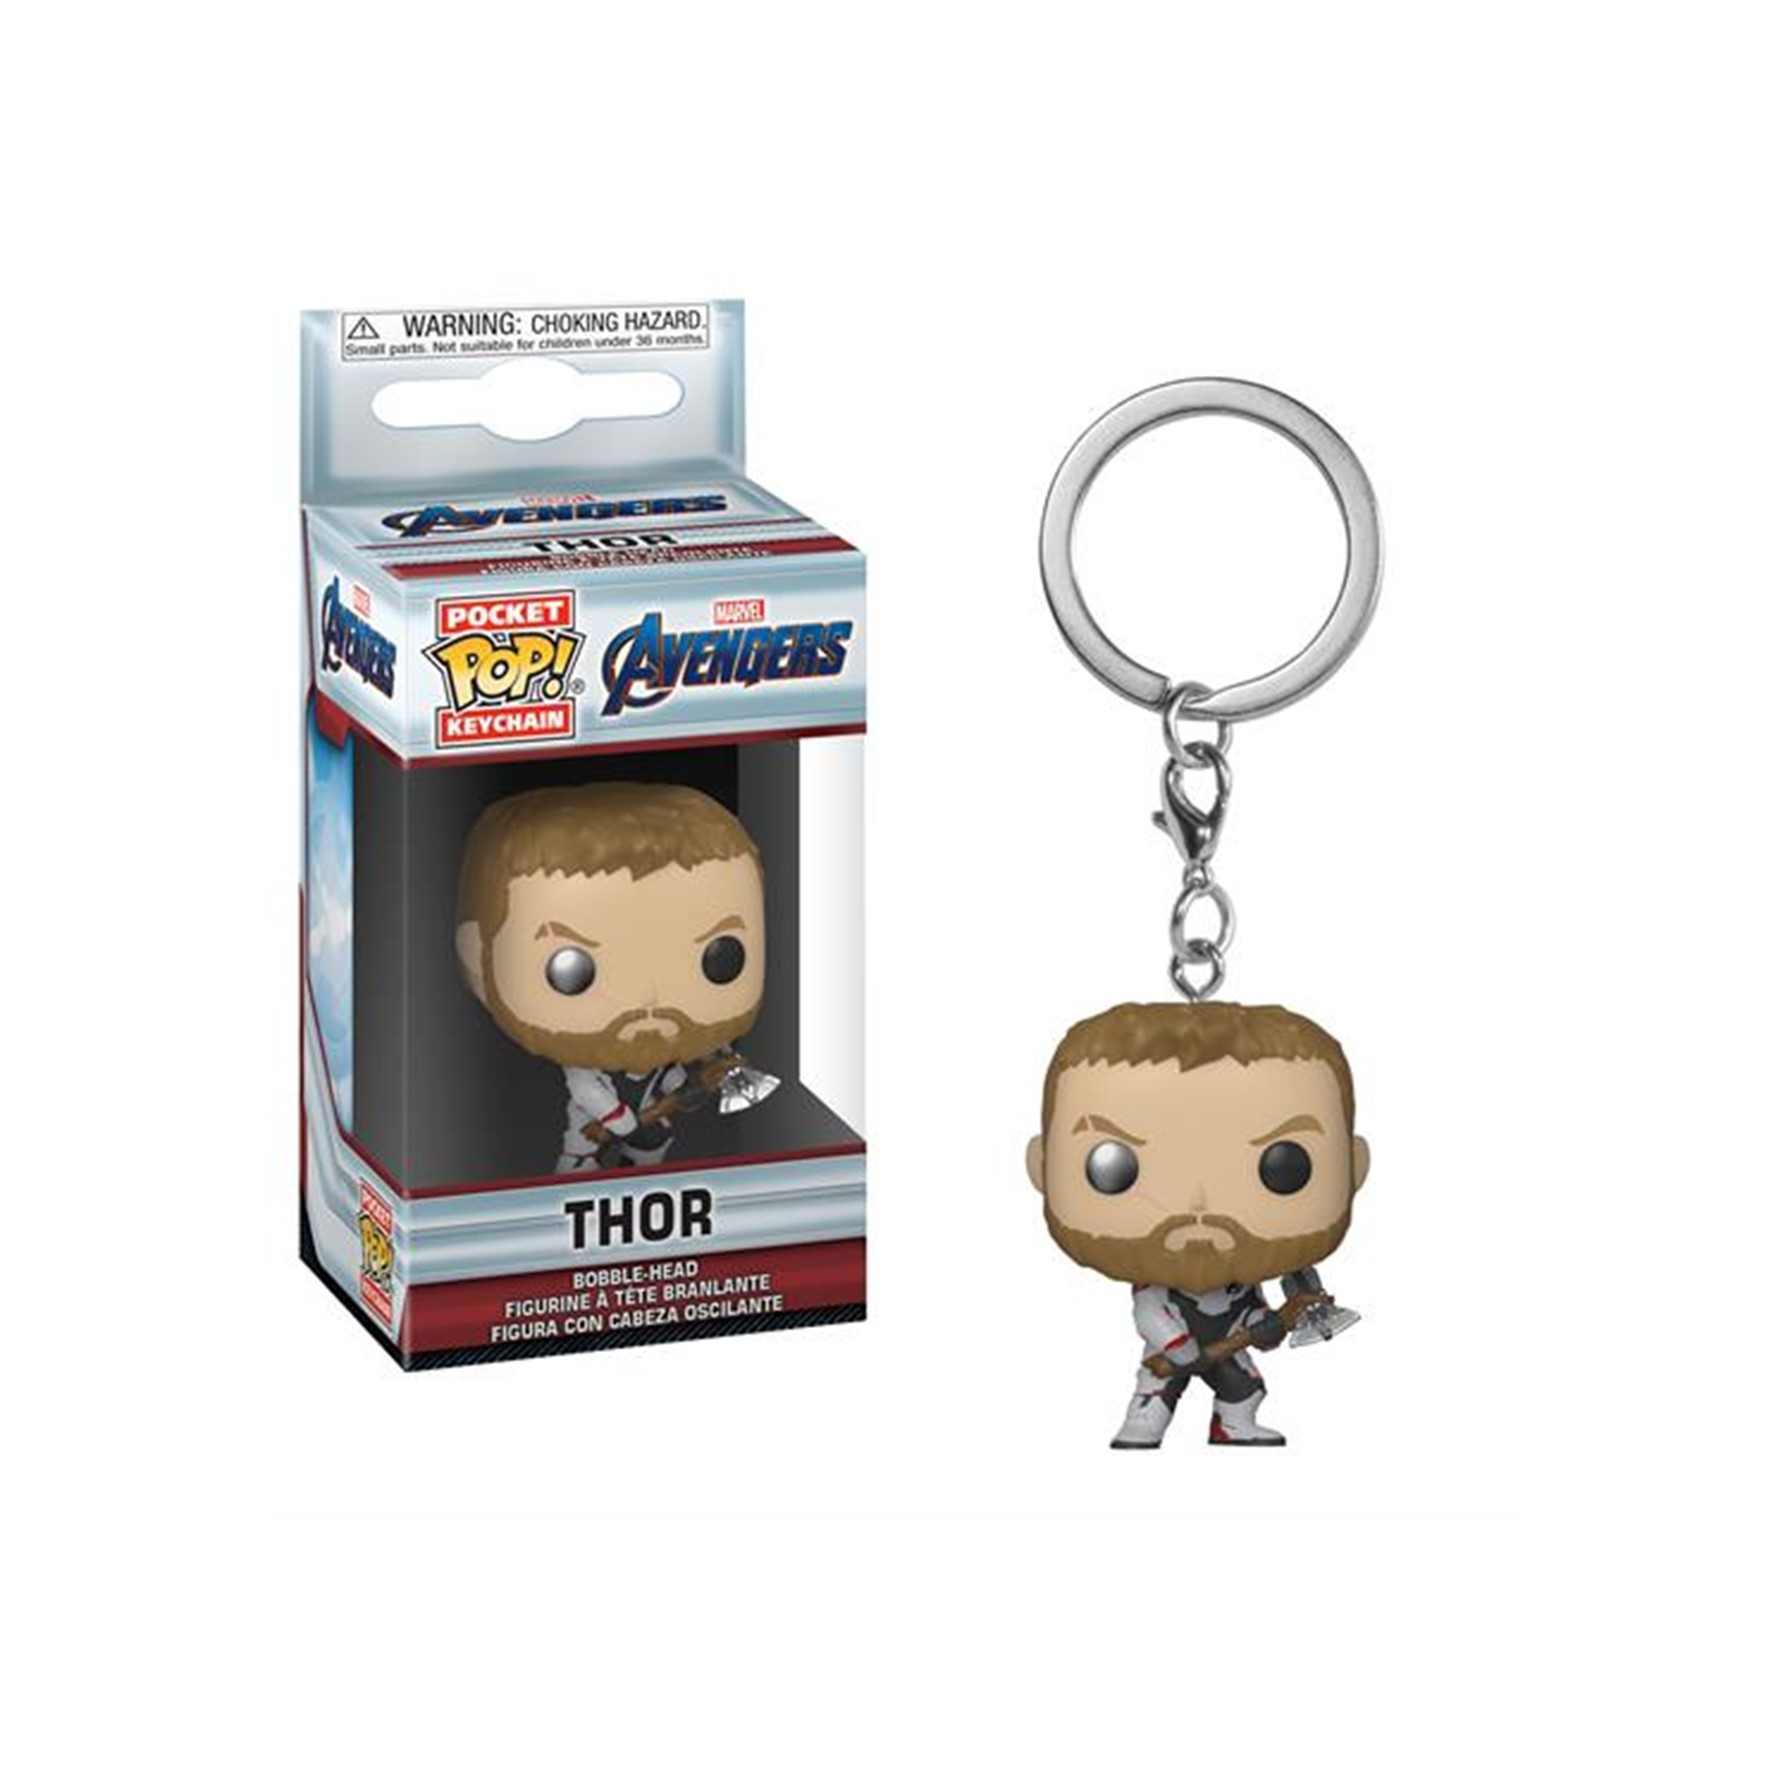 Funko Pop Avengers Pocket Pop Thor